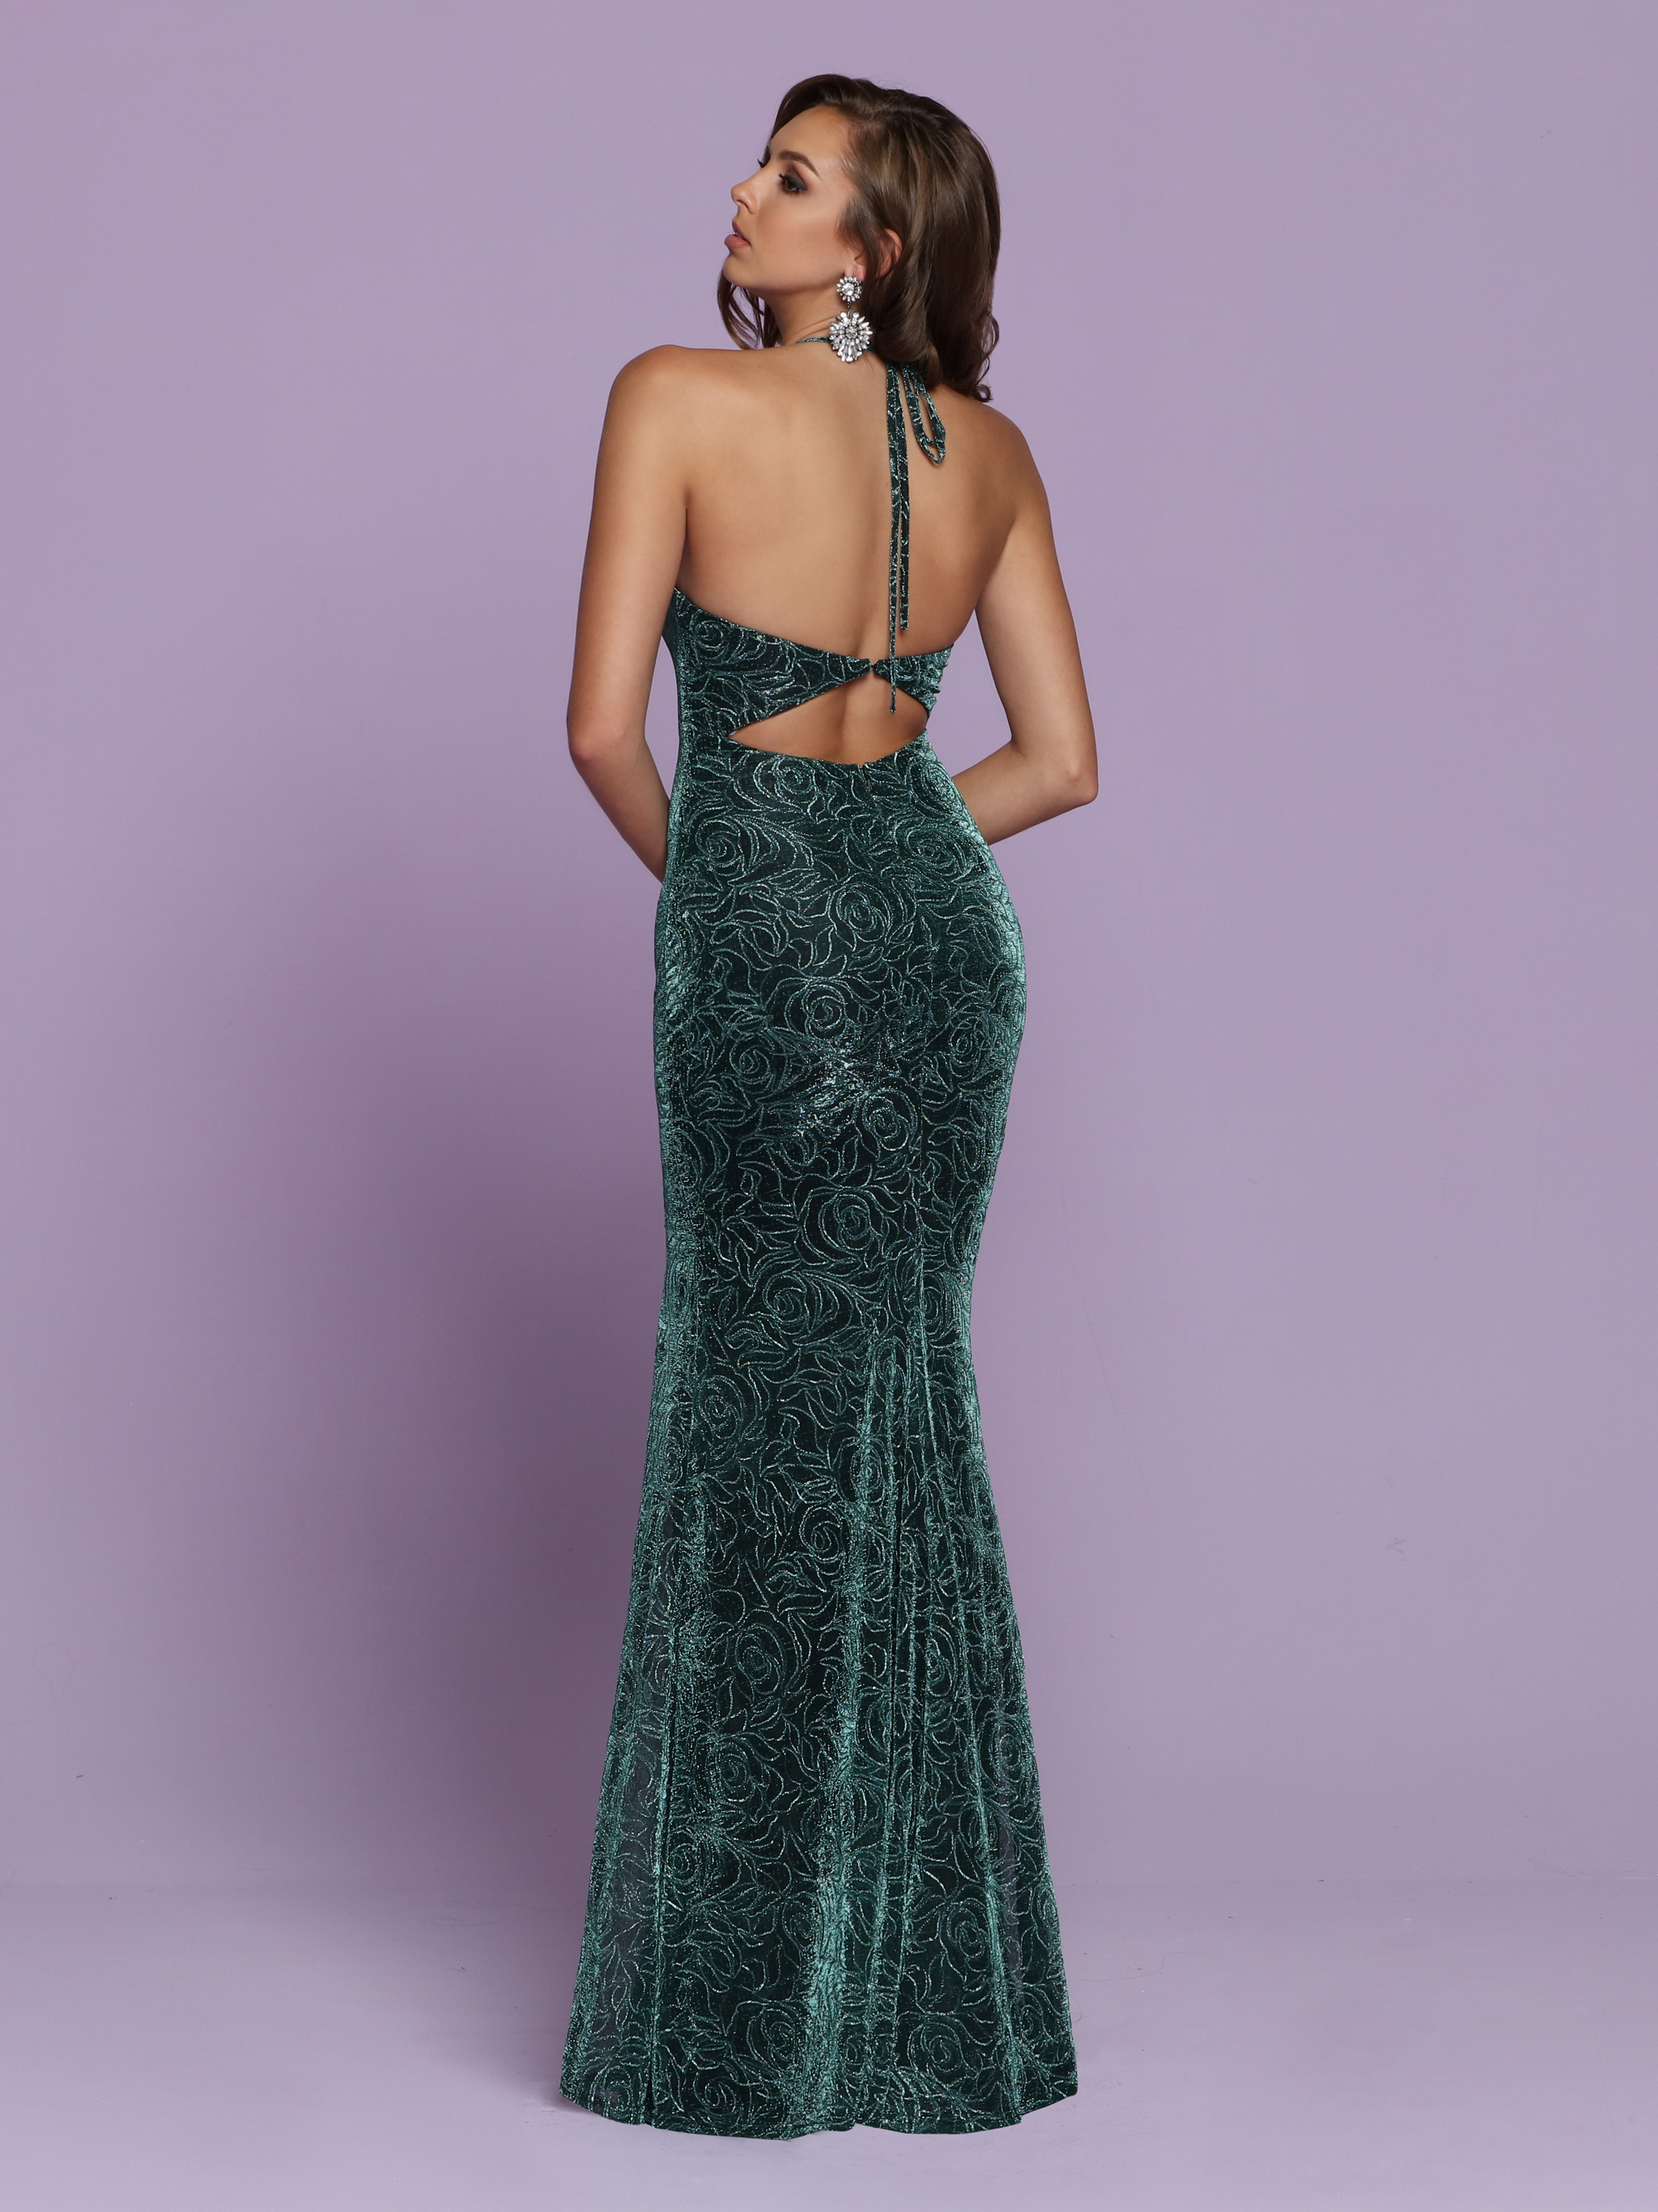 Image showing back view of style #72082